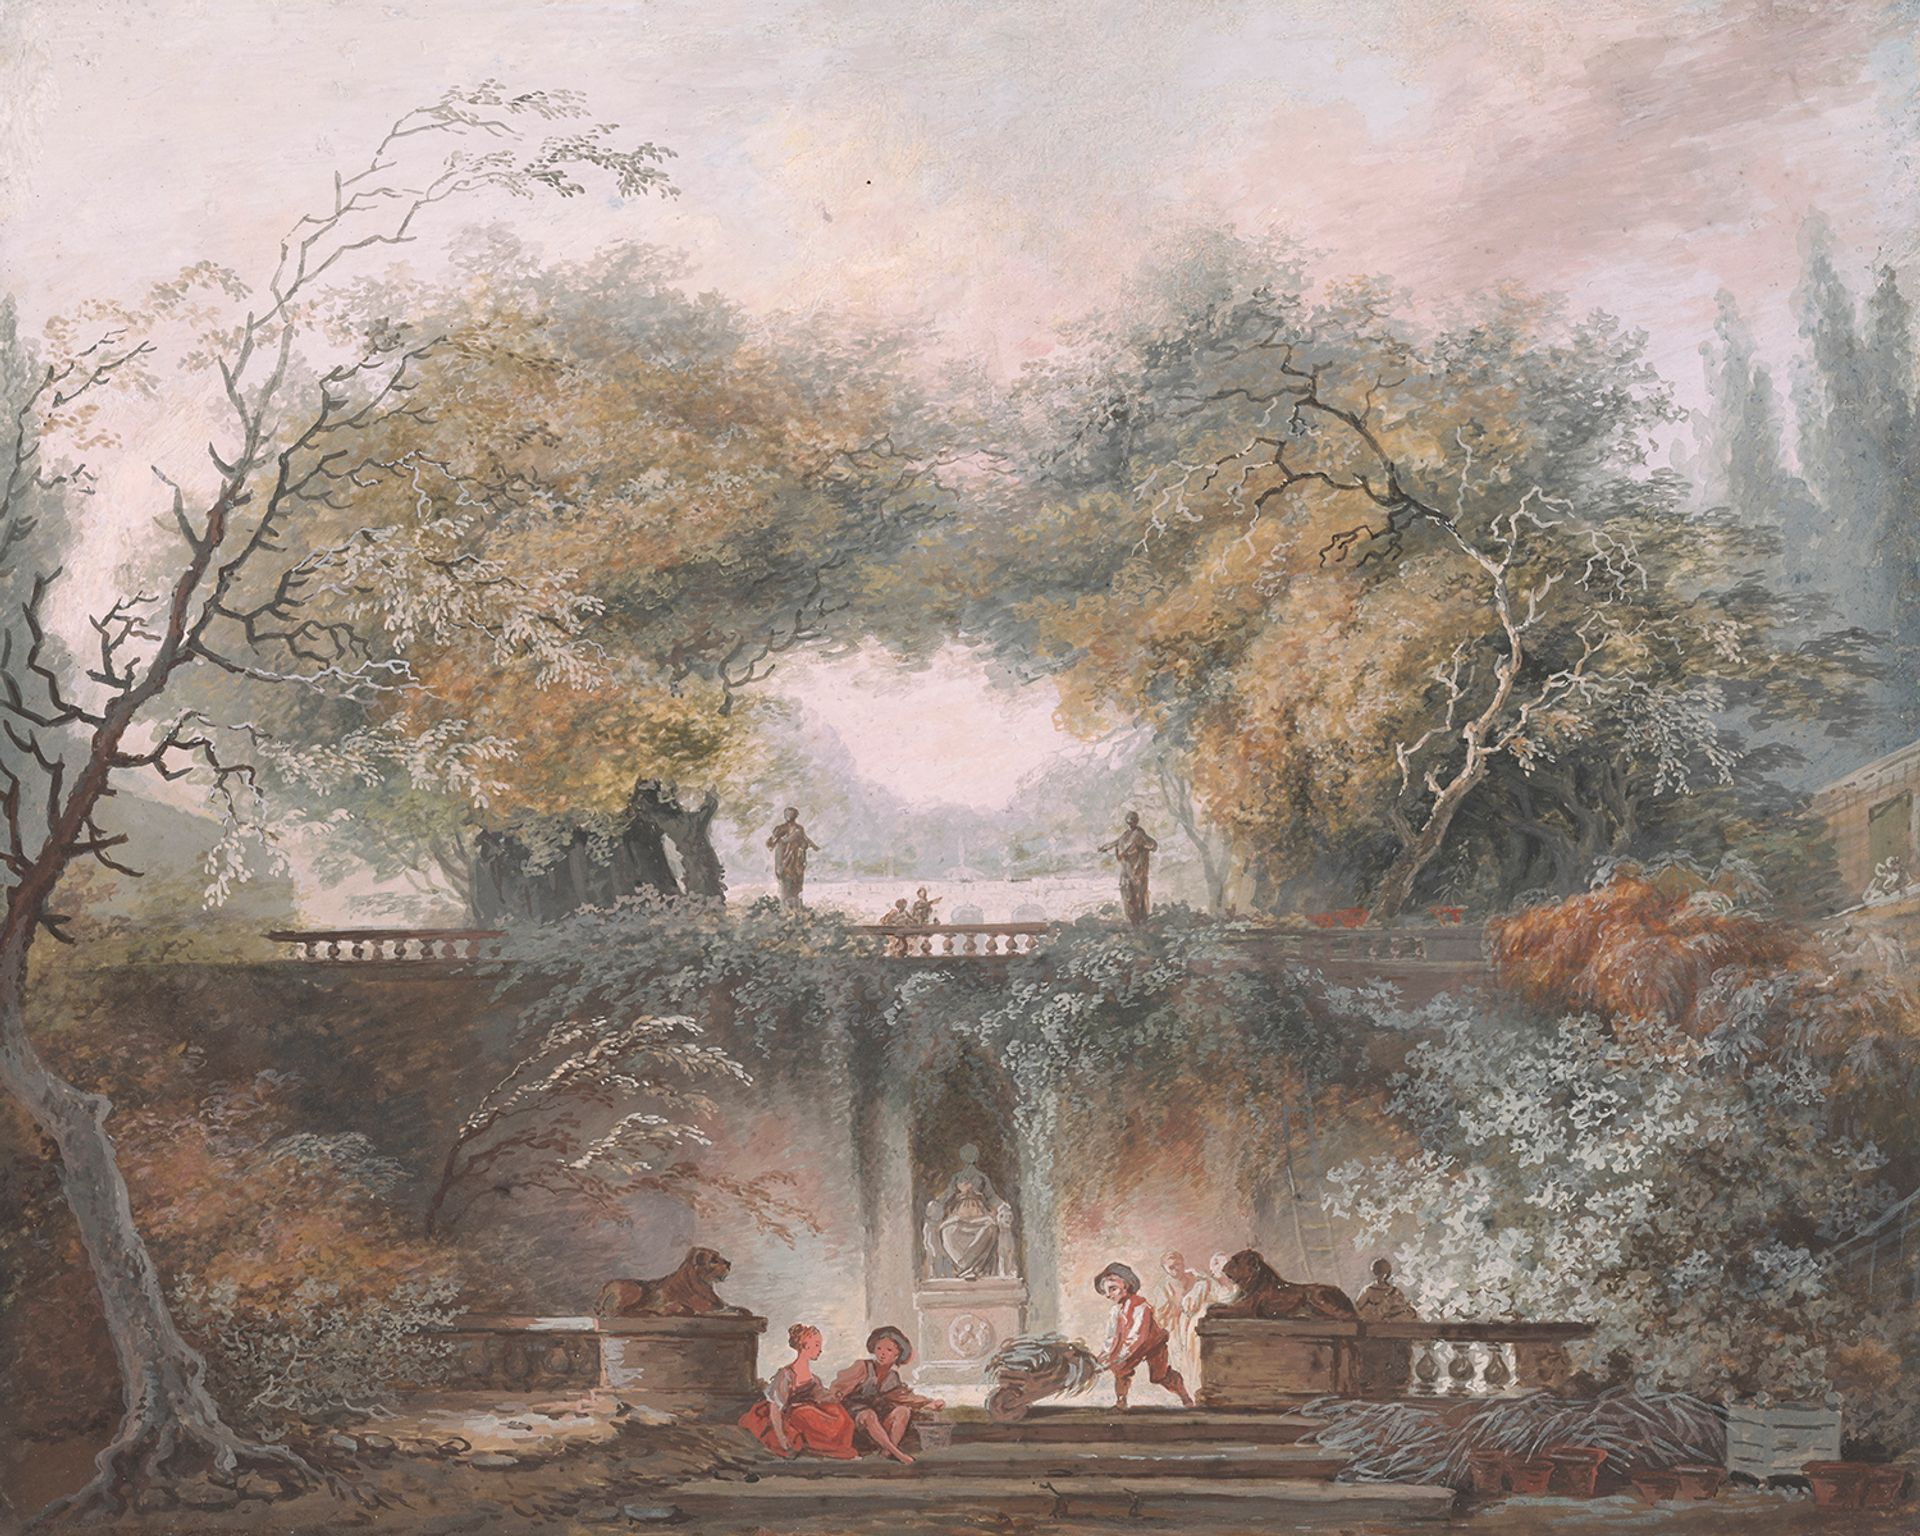 Jean-Honoré Fragonard, The Little Park (around 1765) Thaw Collection; The Morgan Library & Museum